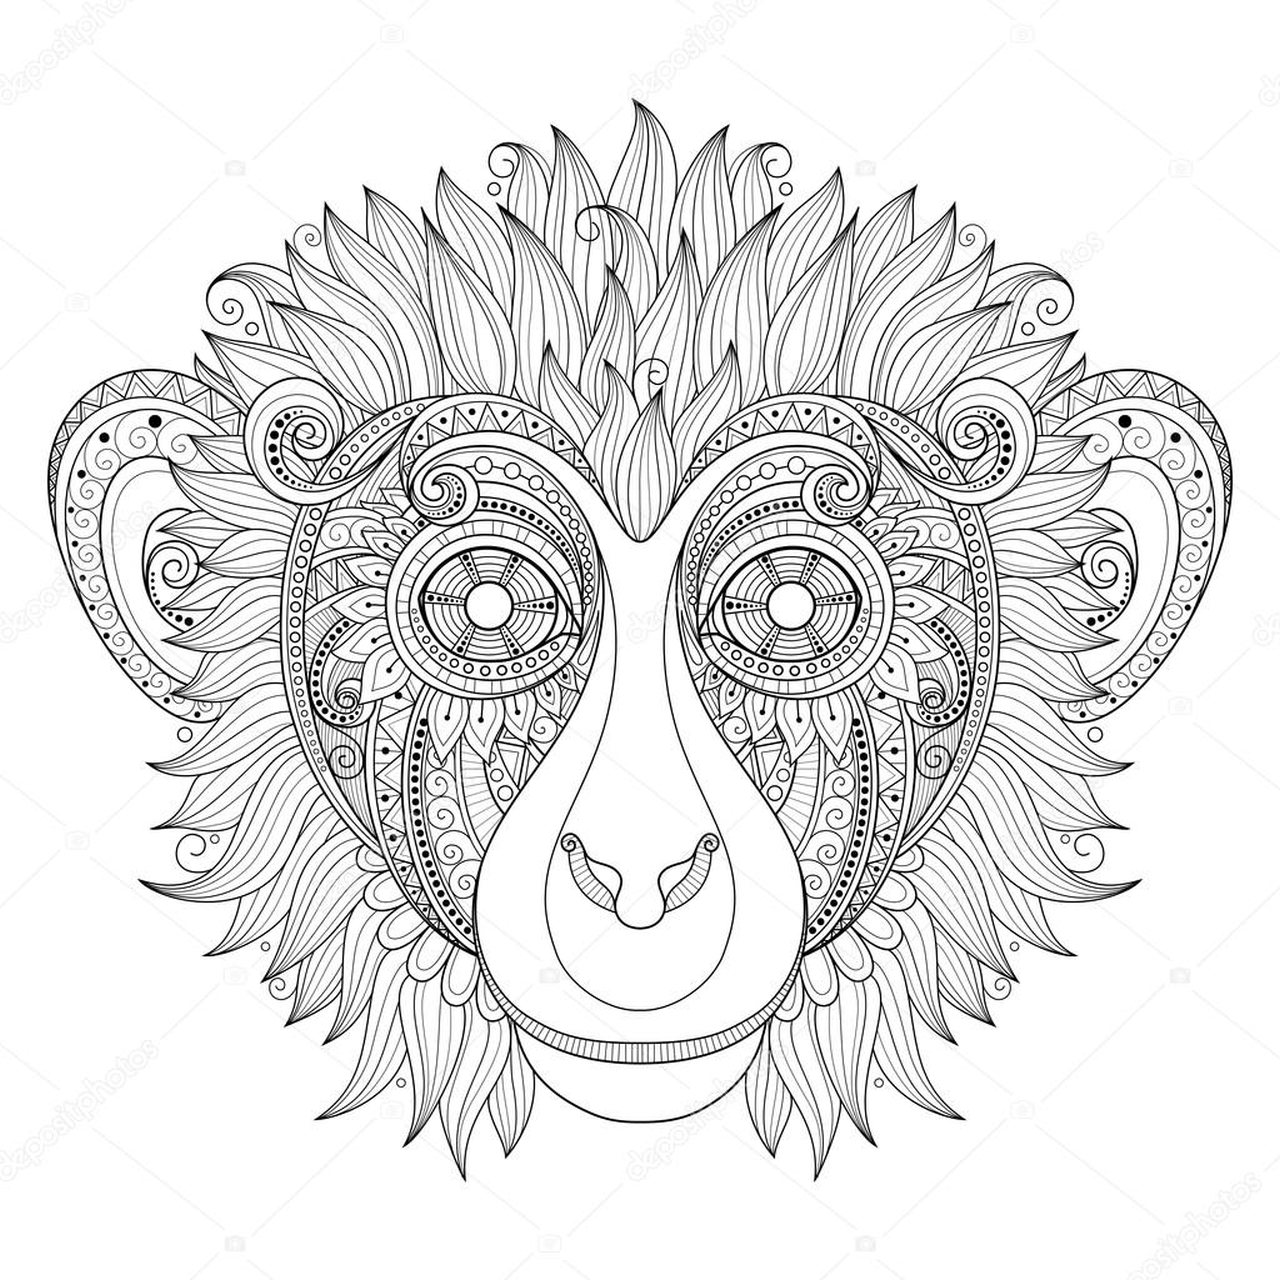 Monkey Coloring Pages for Adults - 90317